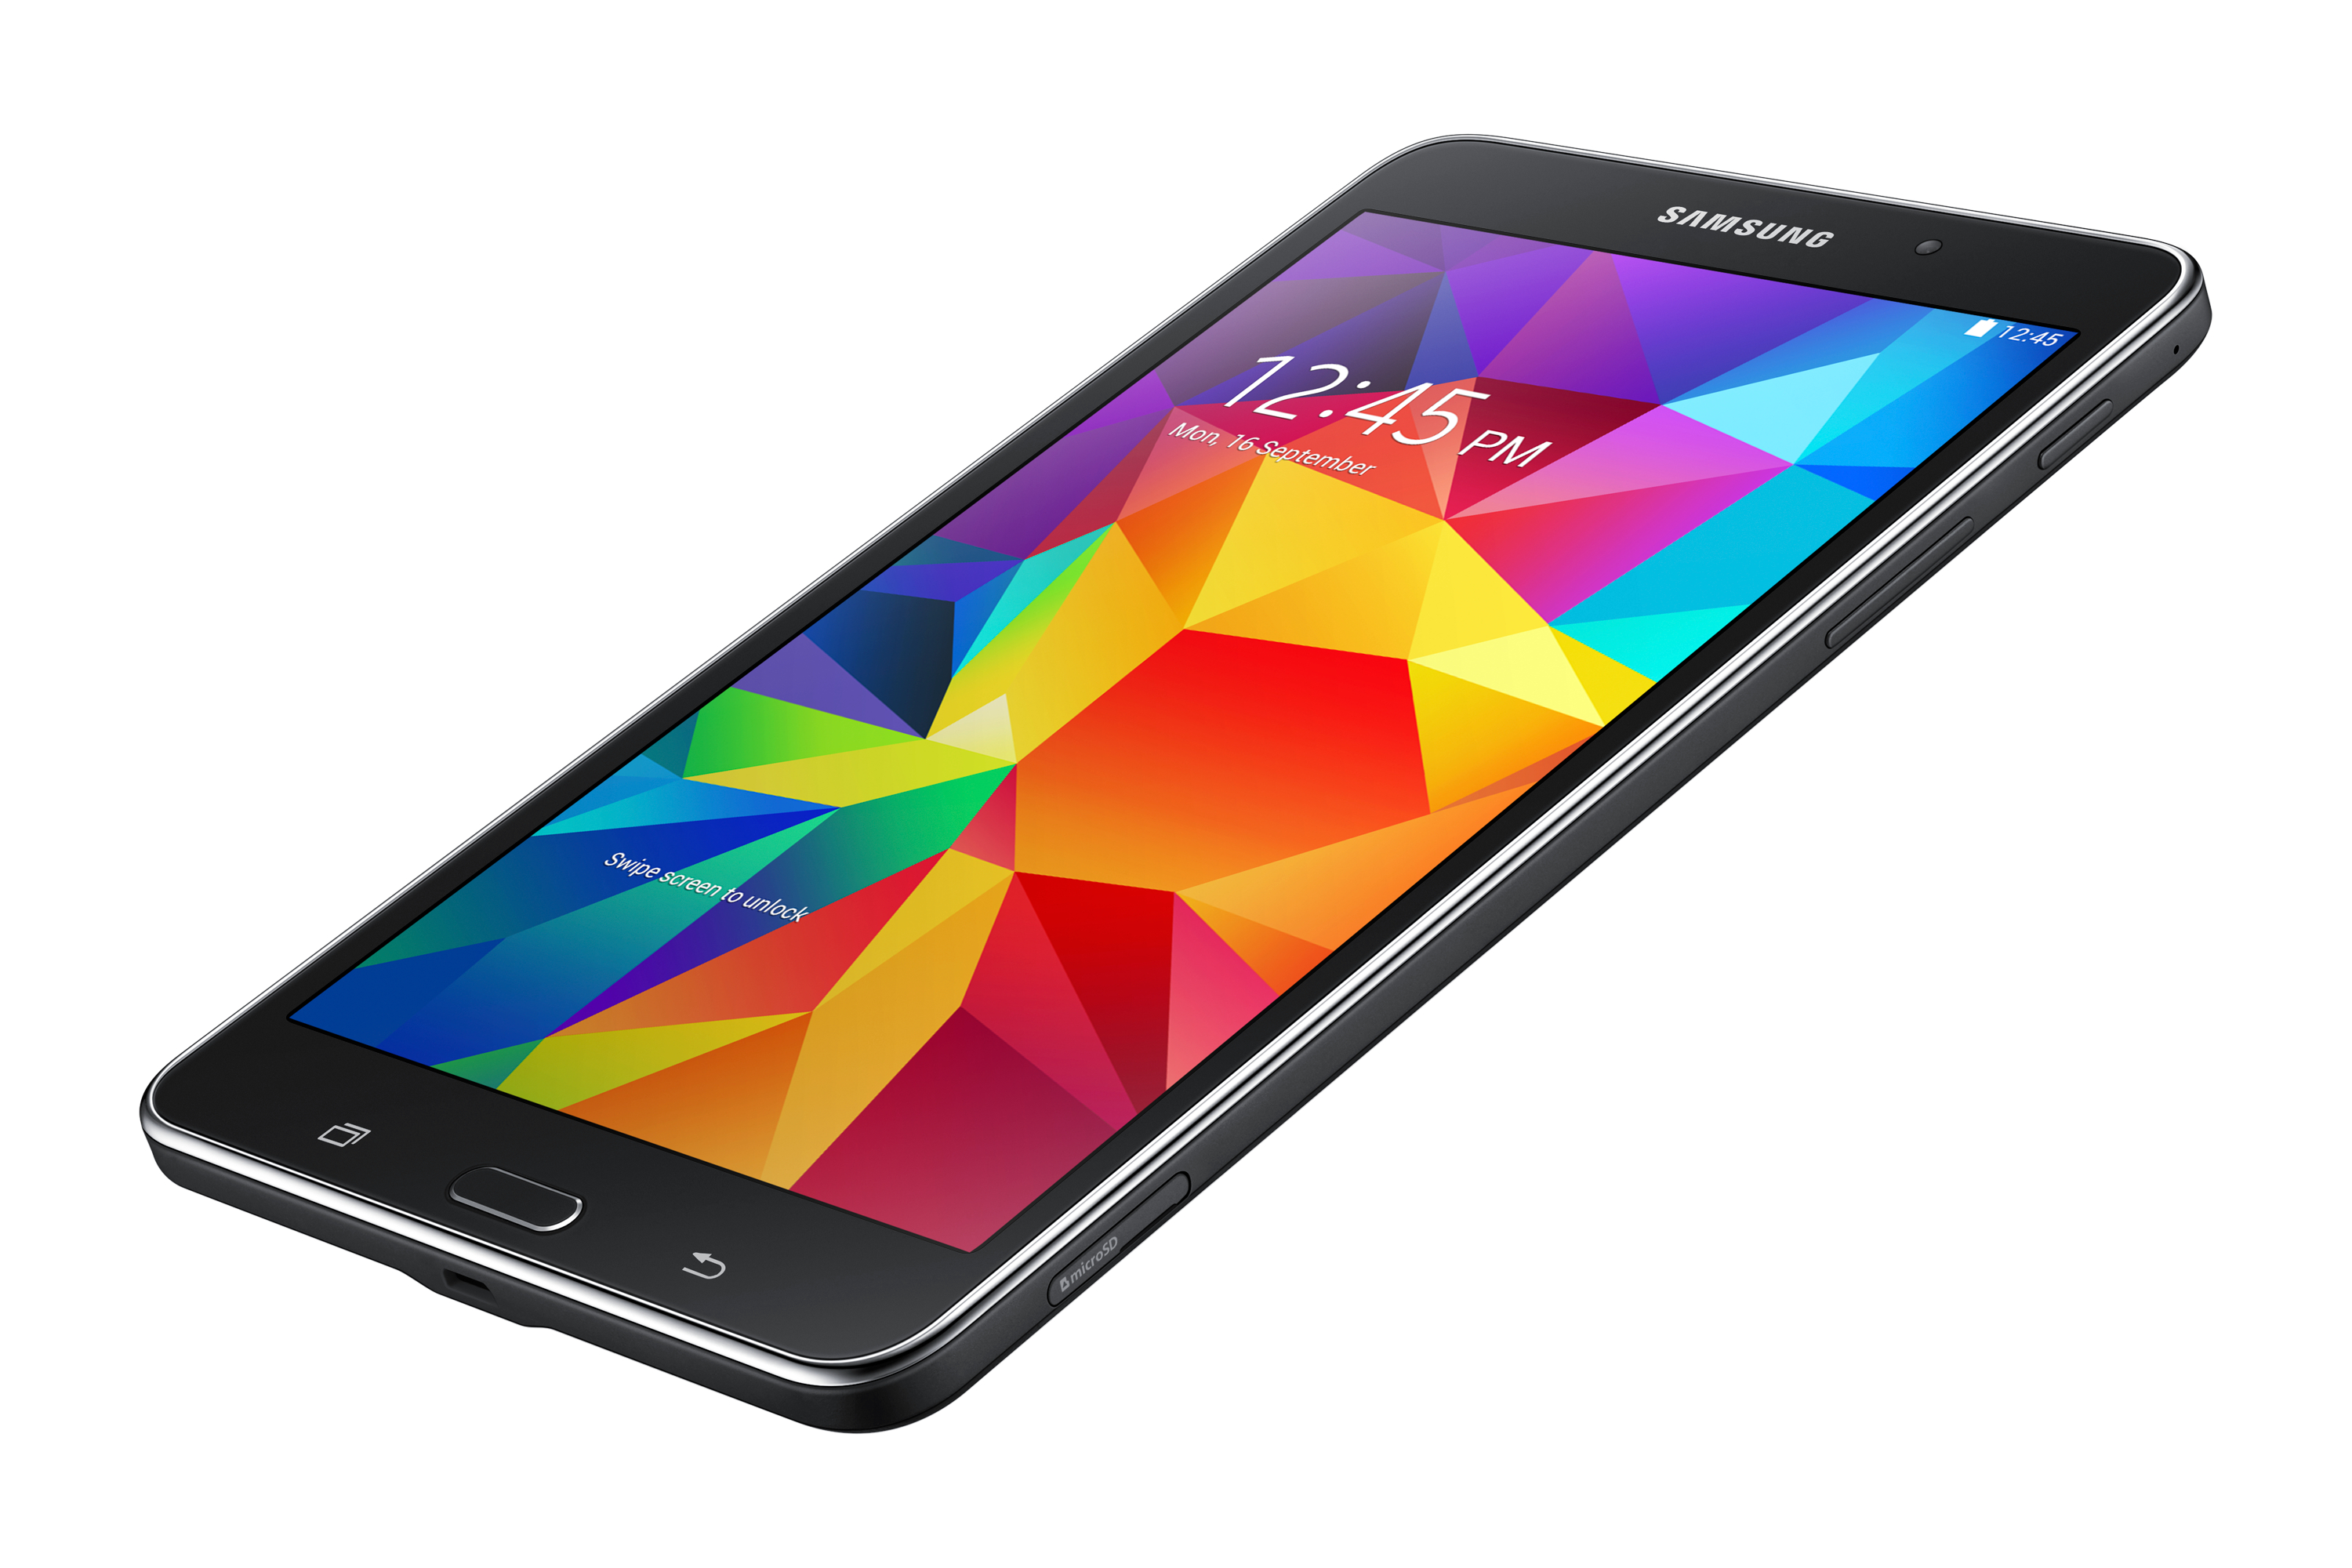 update Galaxy Tab 4 7.0 T230 to Android 4.4.2